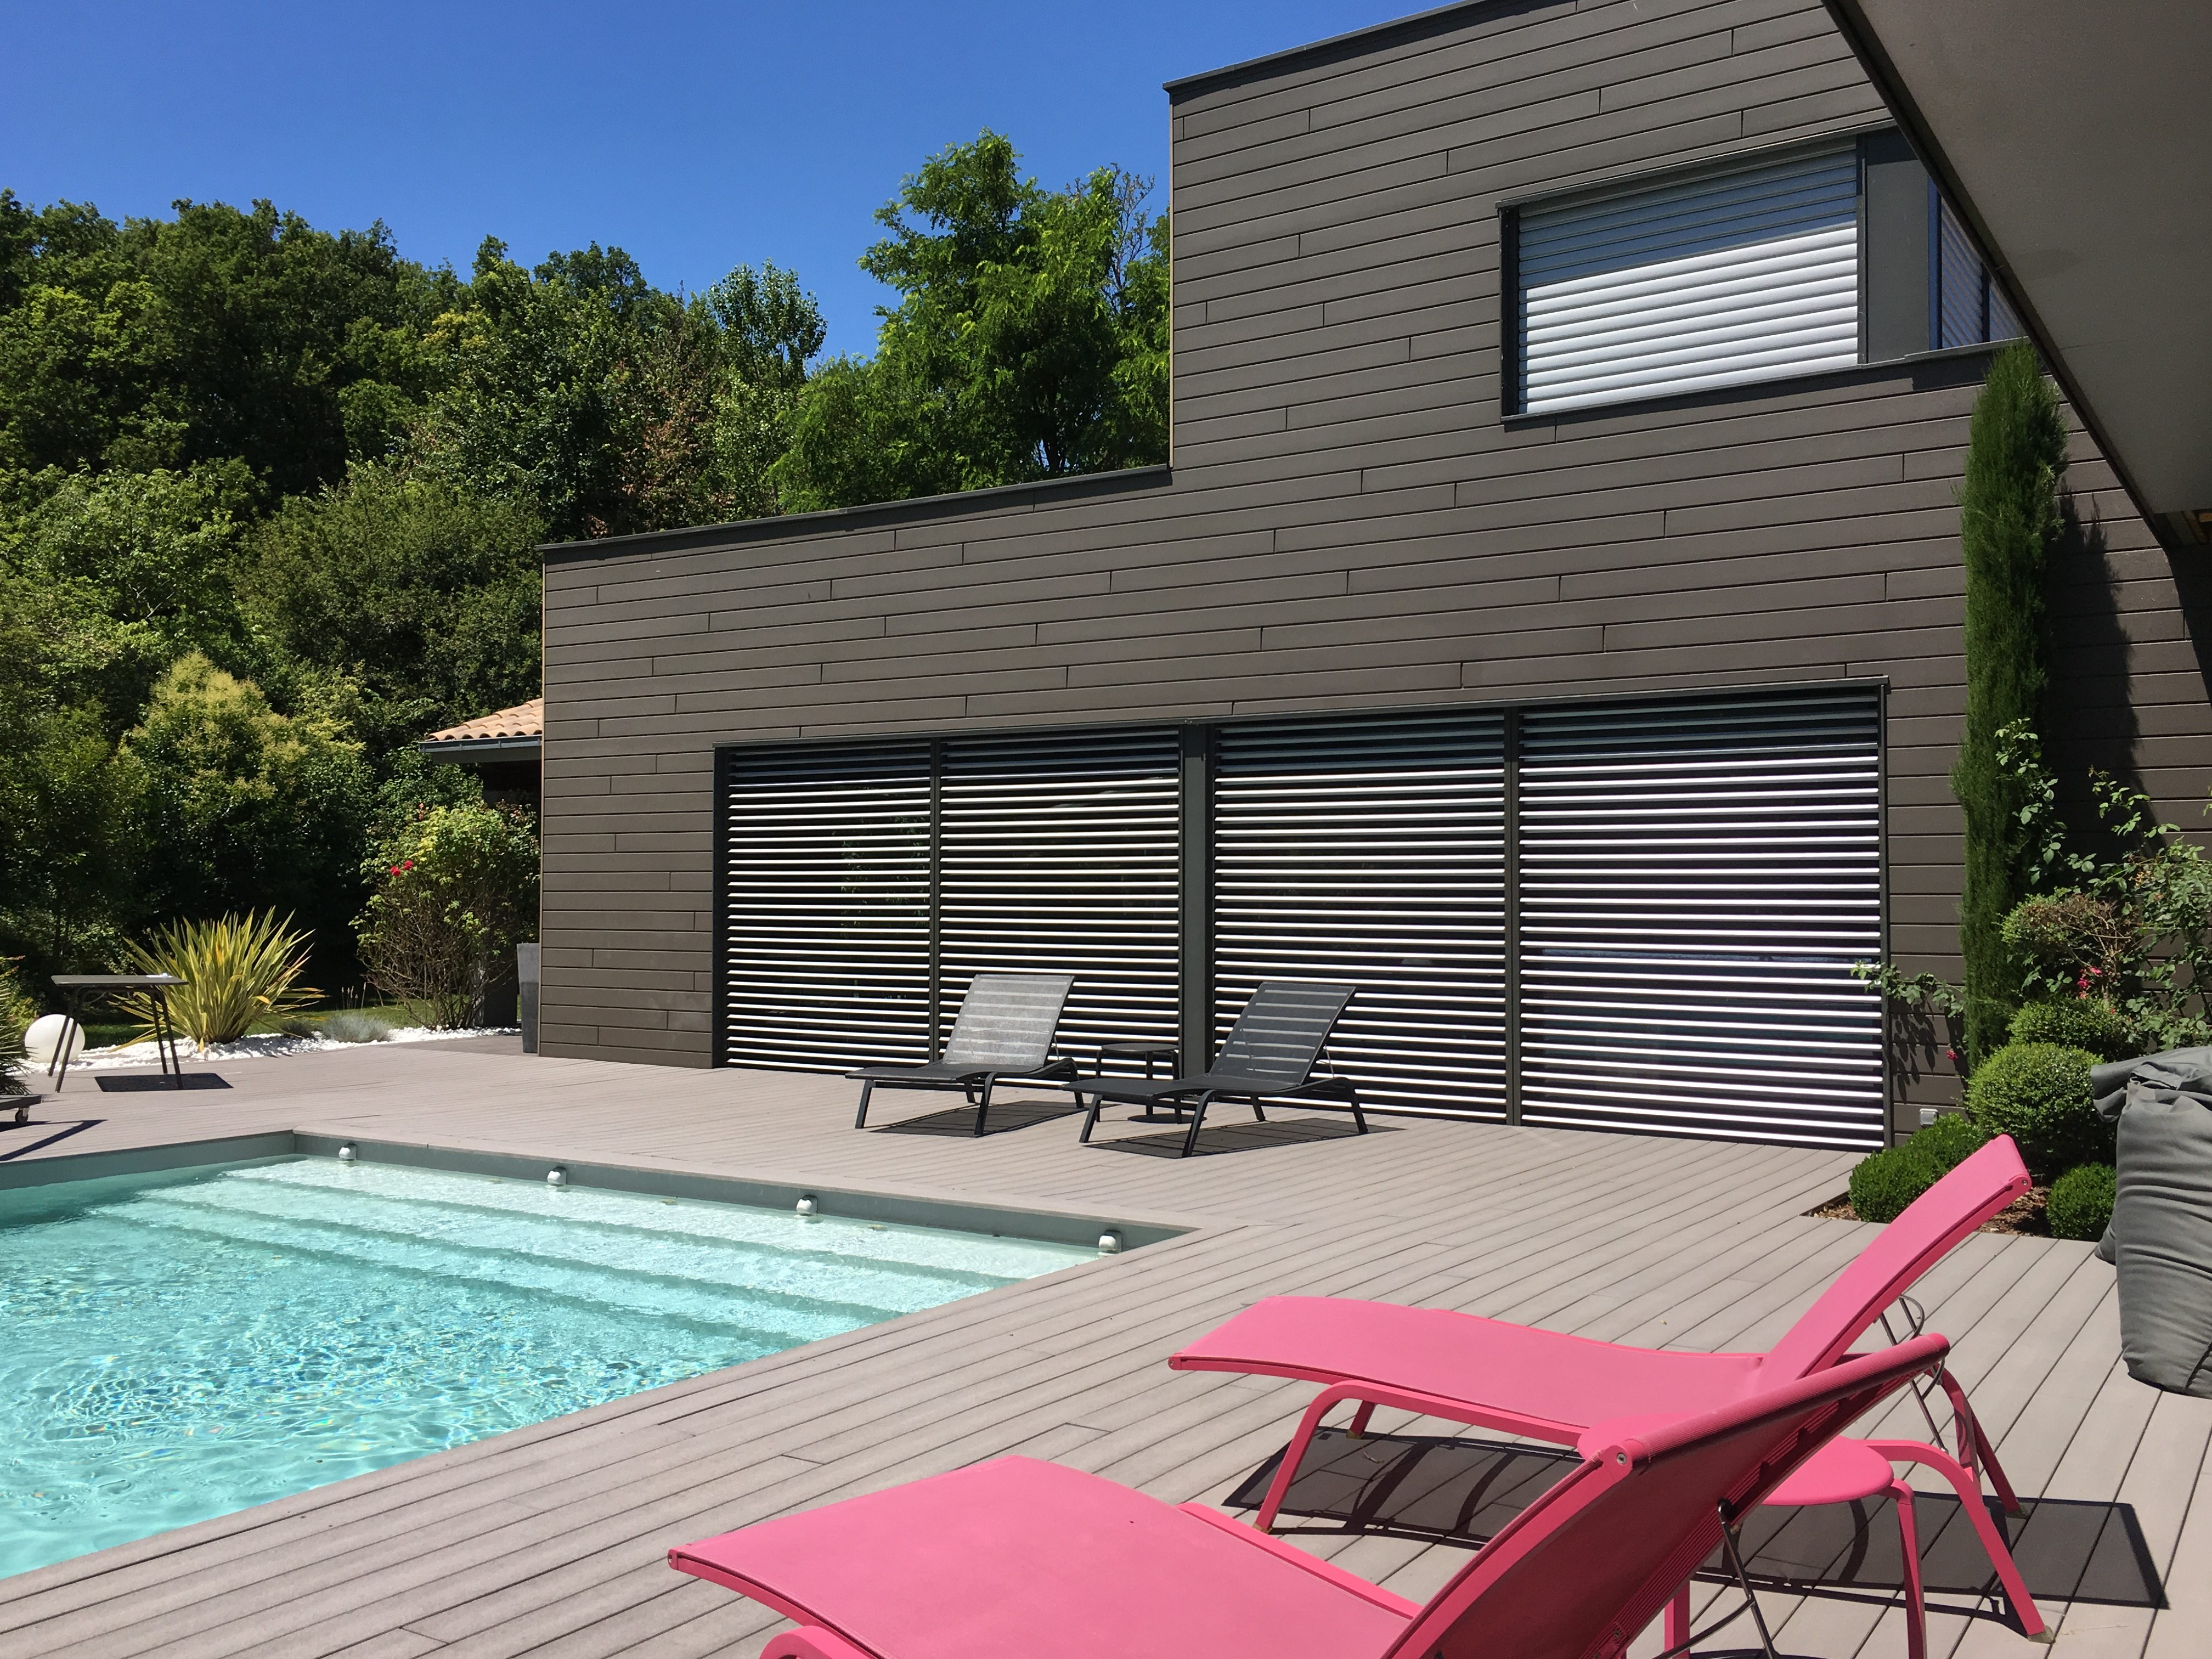 rare maison contemporaine avec piscine, Photo 8